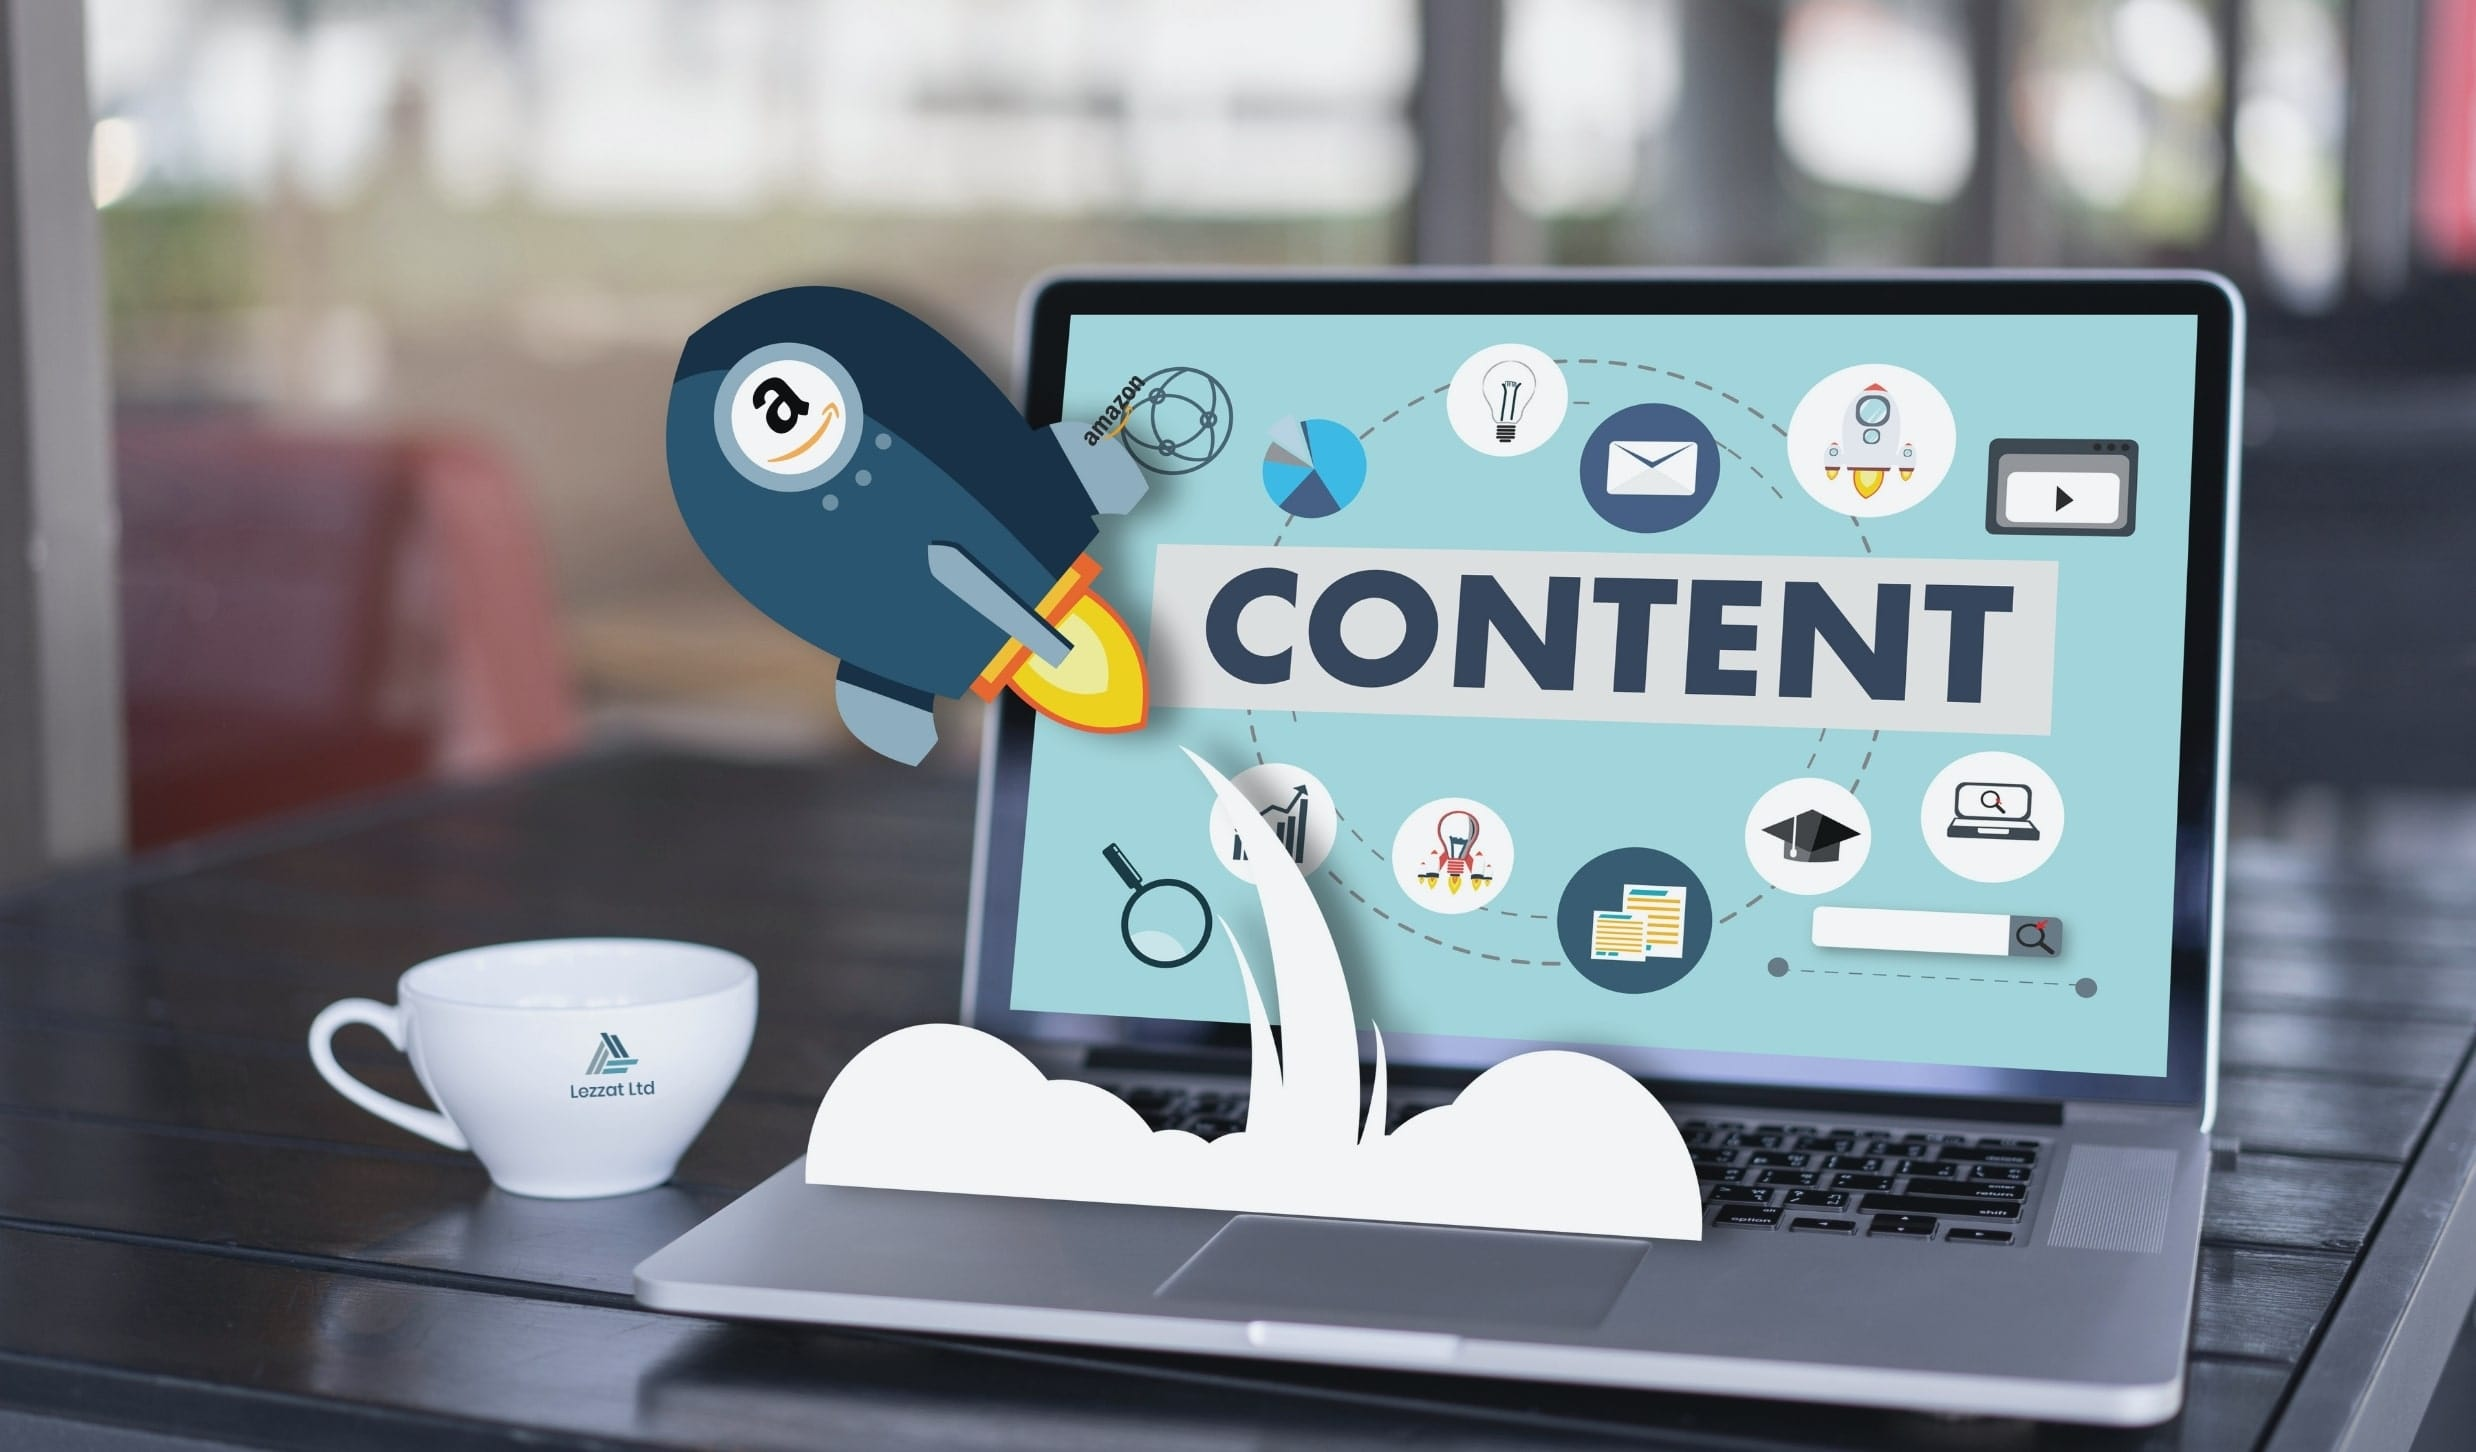 Want a 10 out of 10 Amazon Listing Here's What Your Amazon Content Listing Should Be